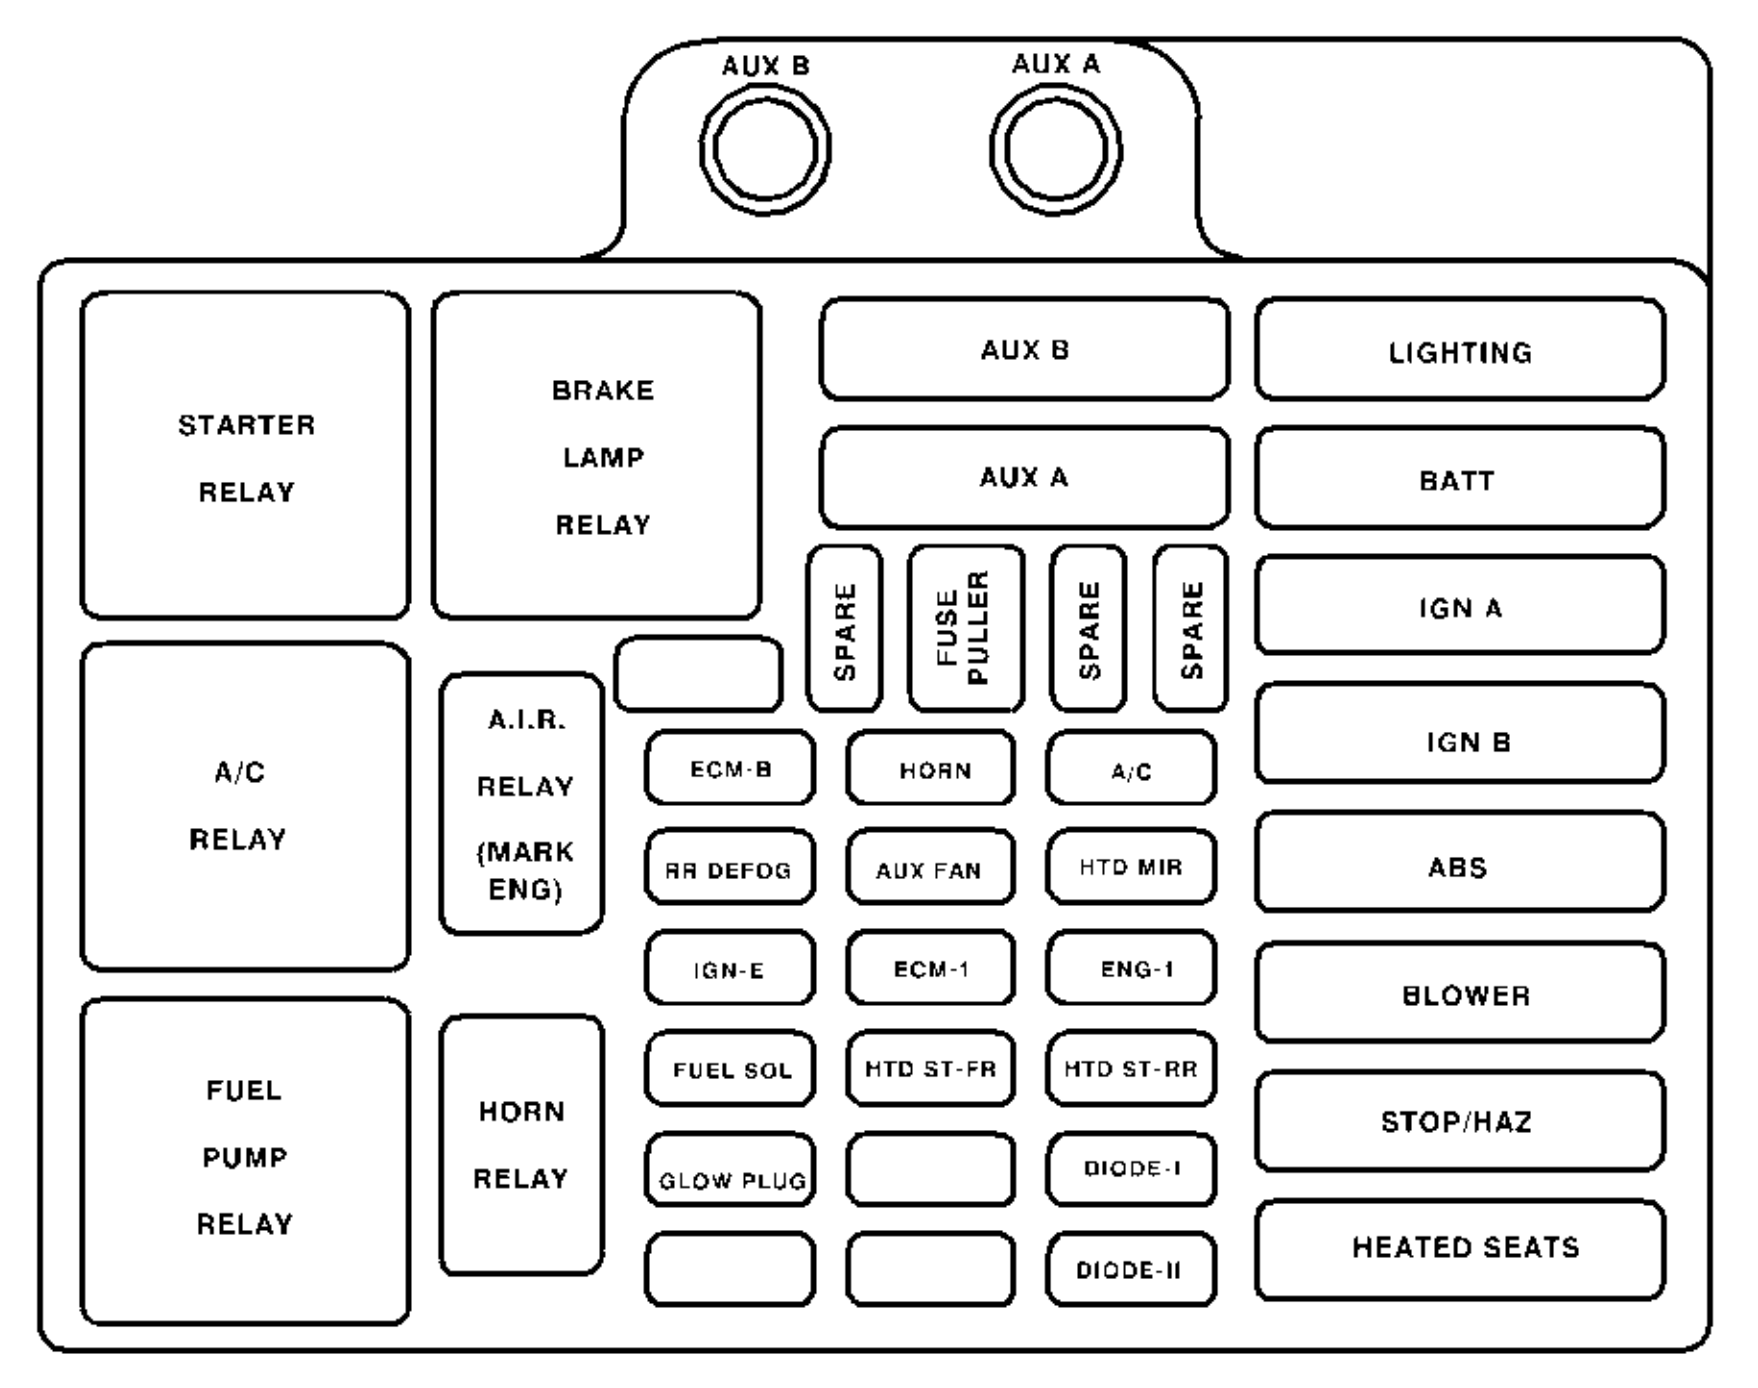 1994 Chevrolet Silverado 1500 Fuse Box Diagram. Chevrolet